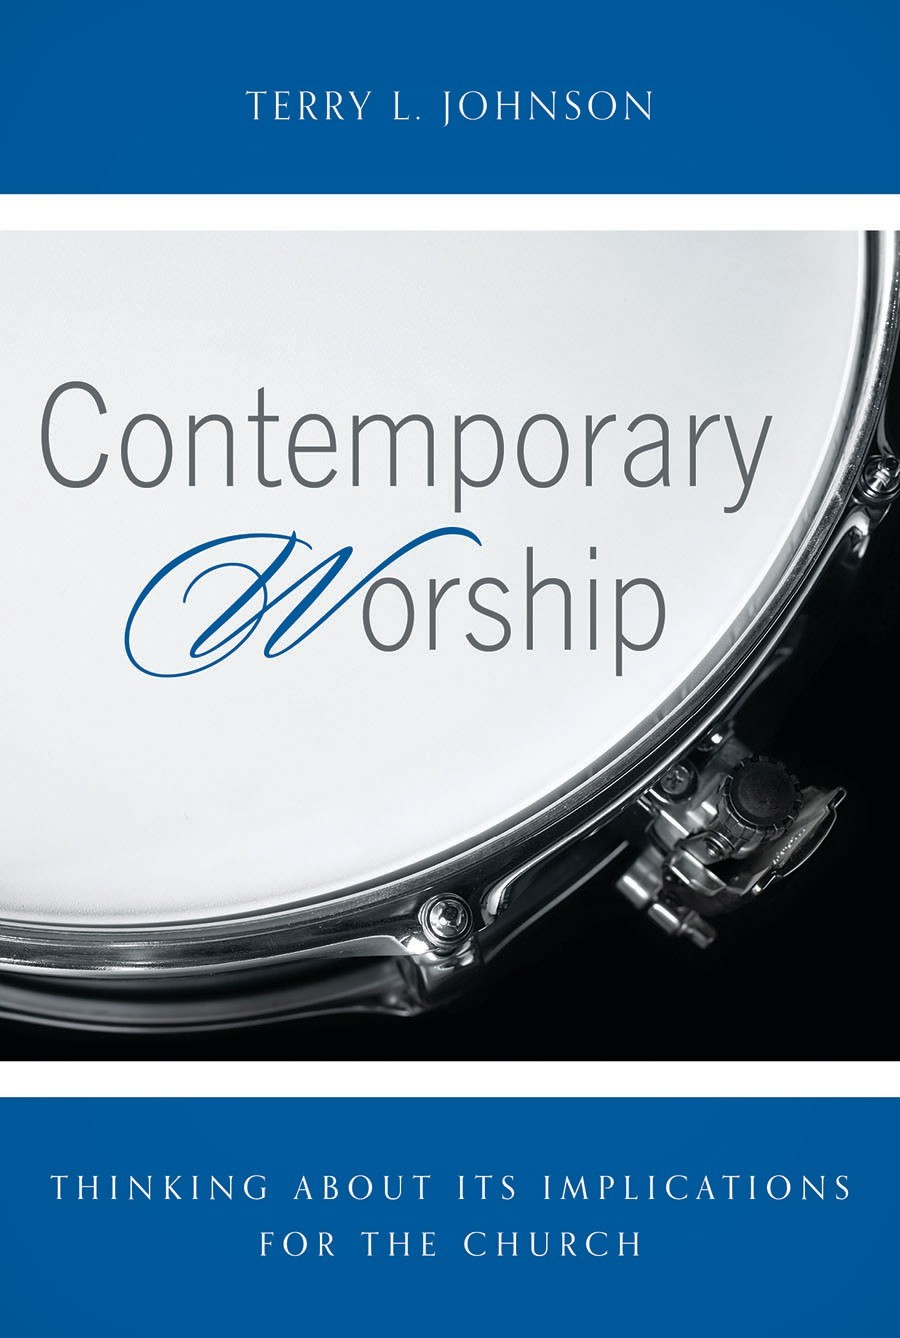 Cover Image for 'Contemporary Worship' by Terry L Johnson